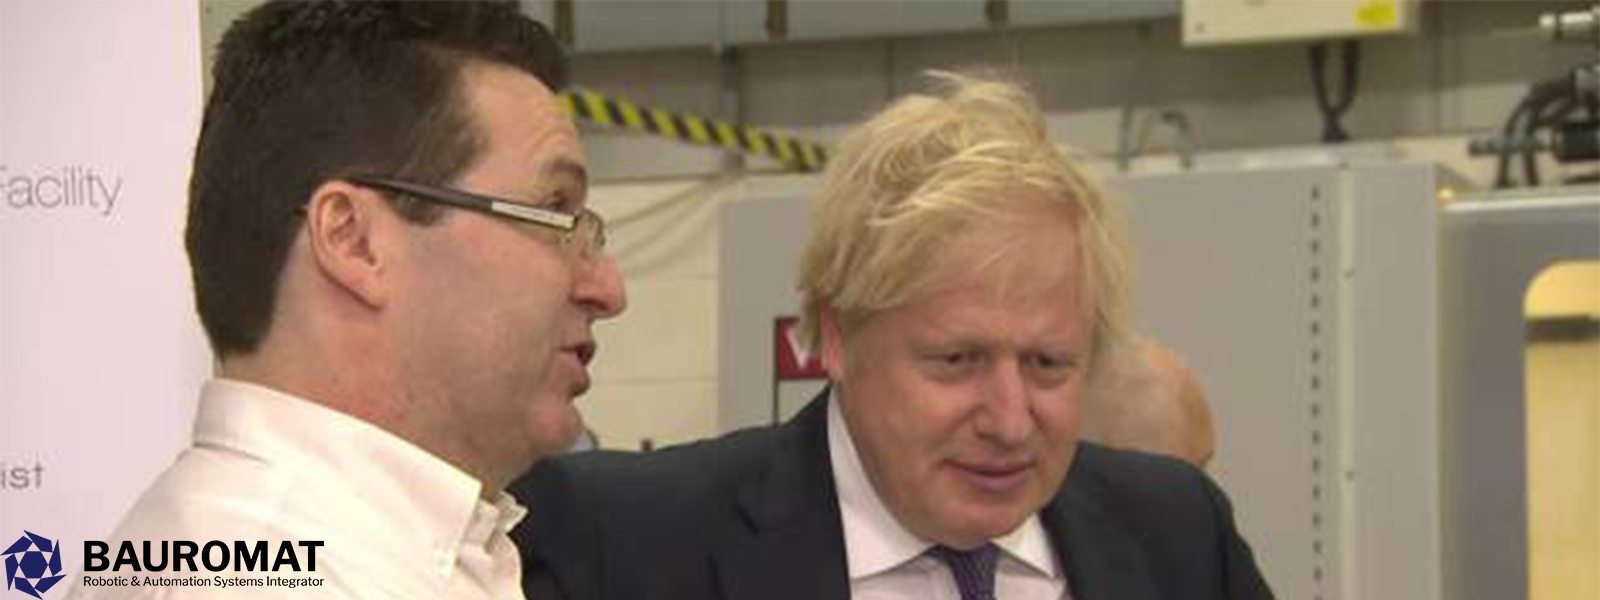 Boris Johnson visits University of Sunderland